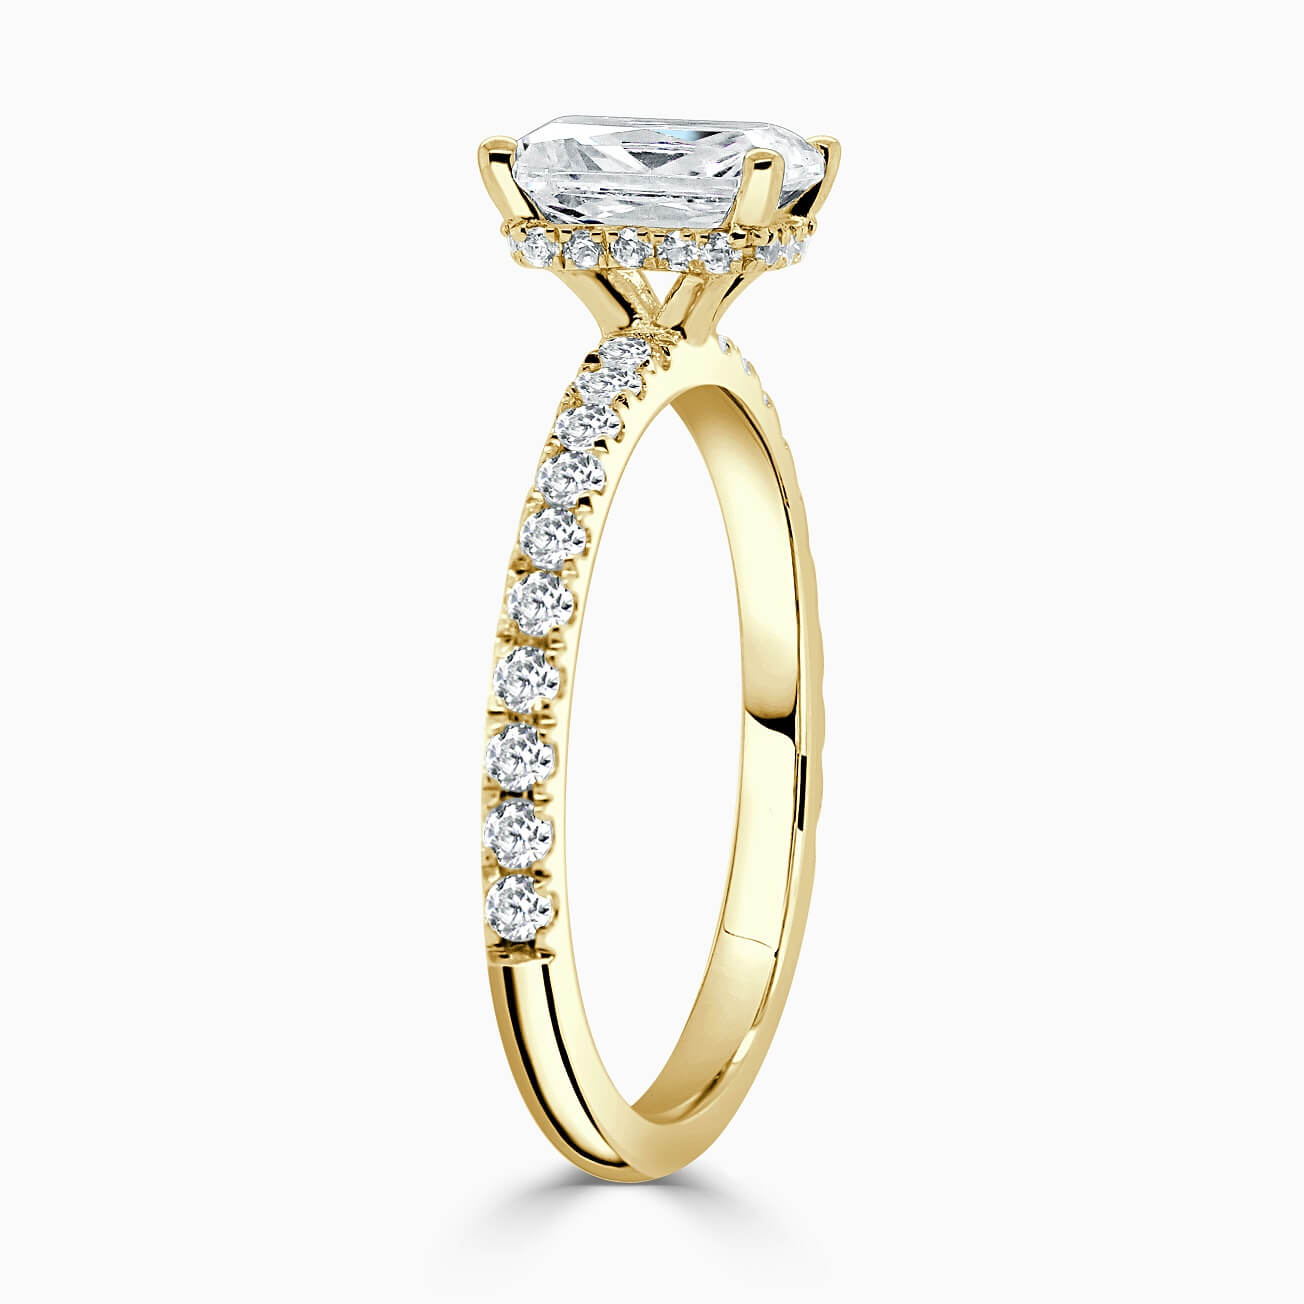 18ct Yellow Gold Emerald Cut Hidden Halo With Cutdown Engagement Ring